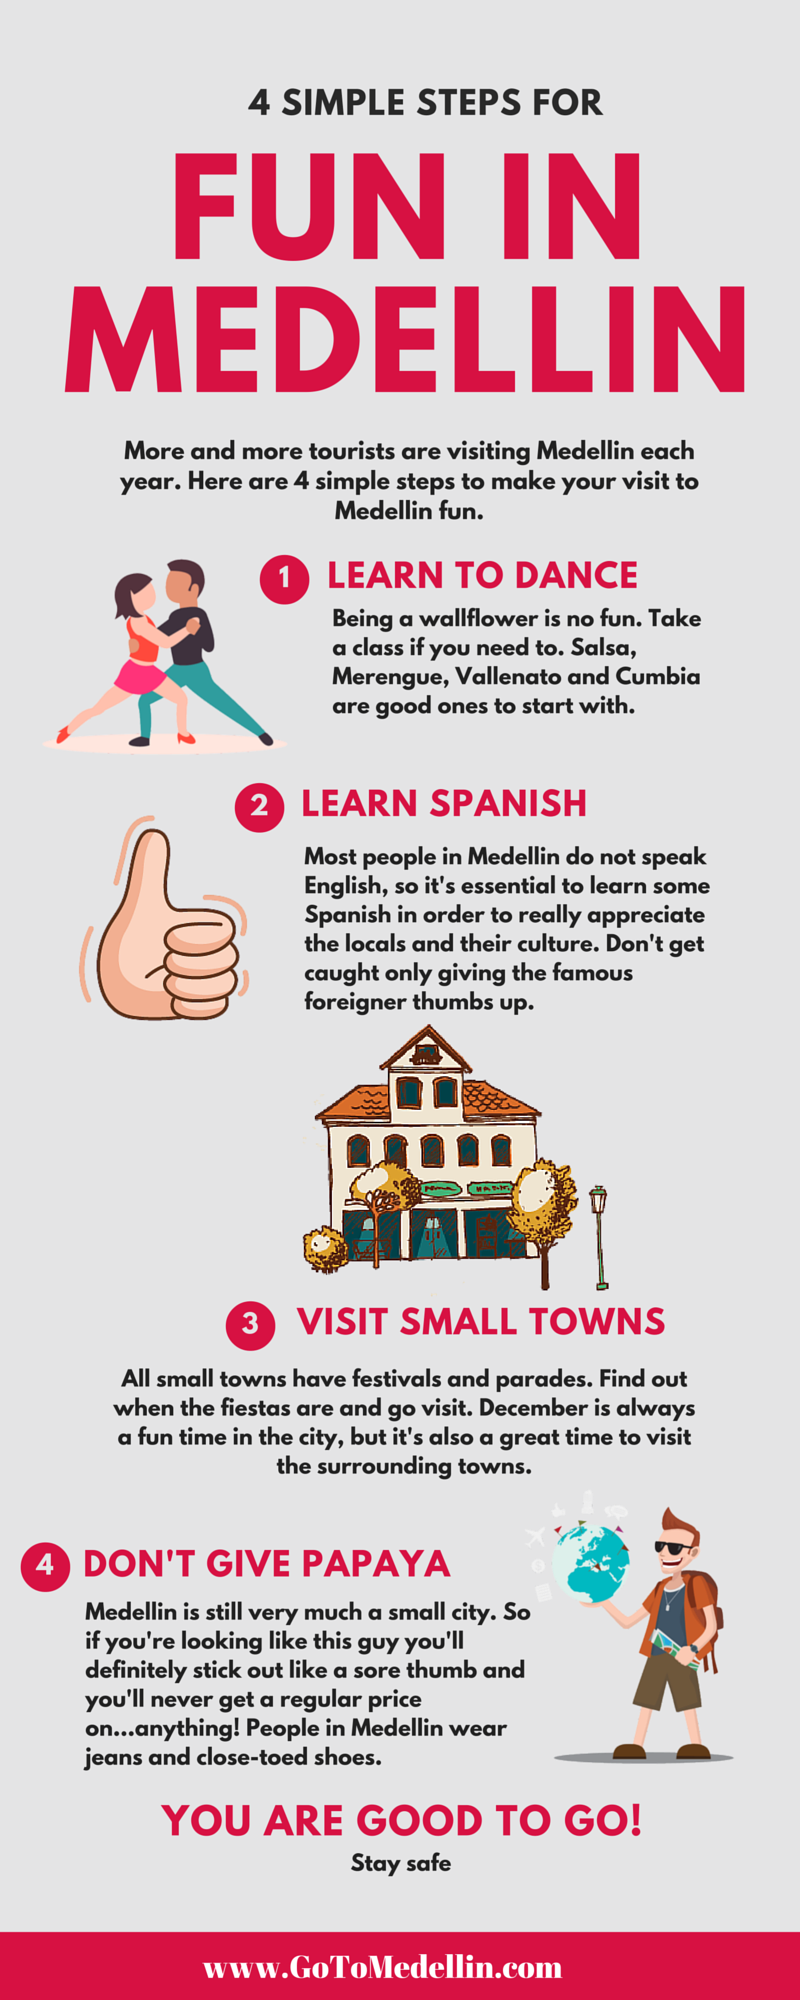 4 Steps to Fun in Medellin